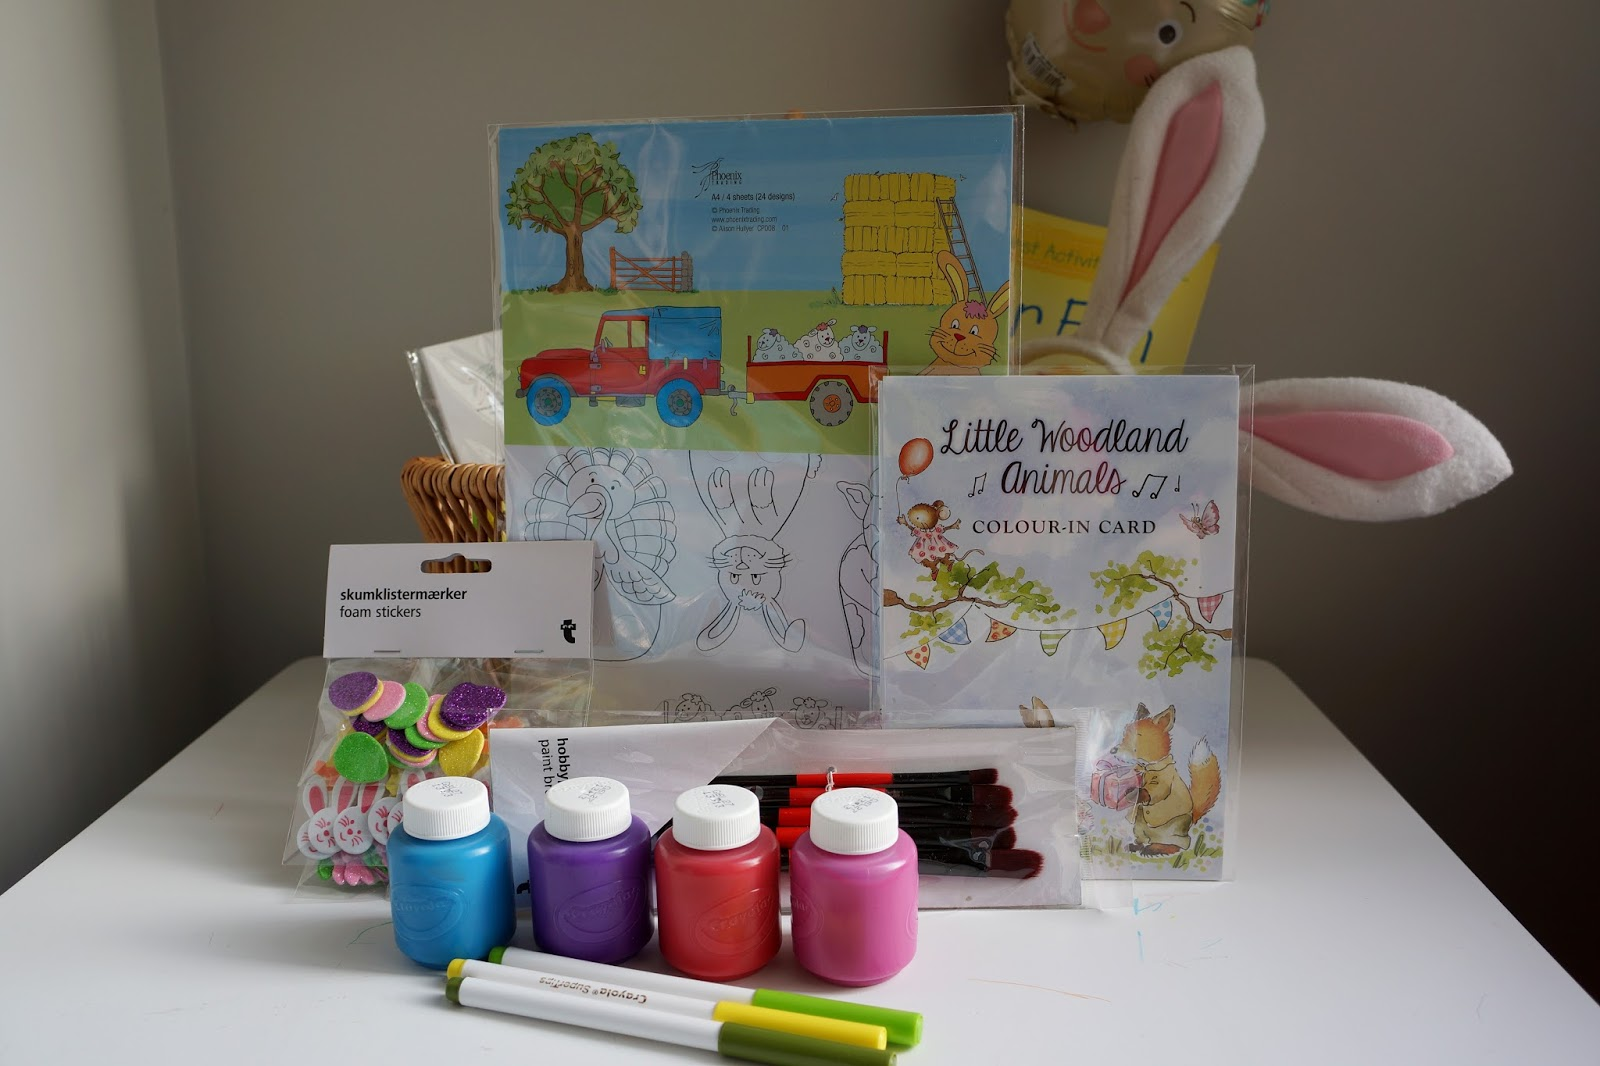 paints, felt tip pens, colouring pads and paint brushes and foam stickers